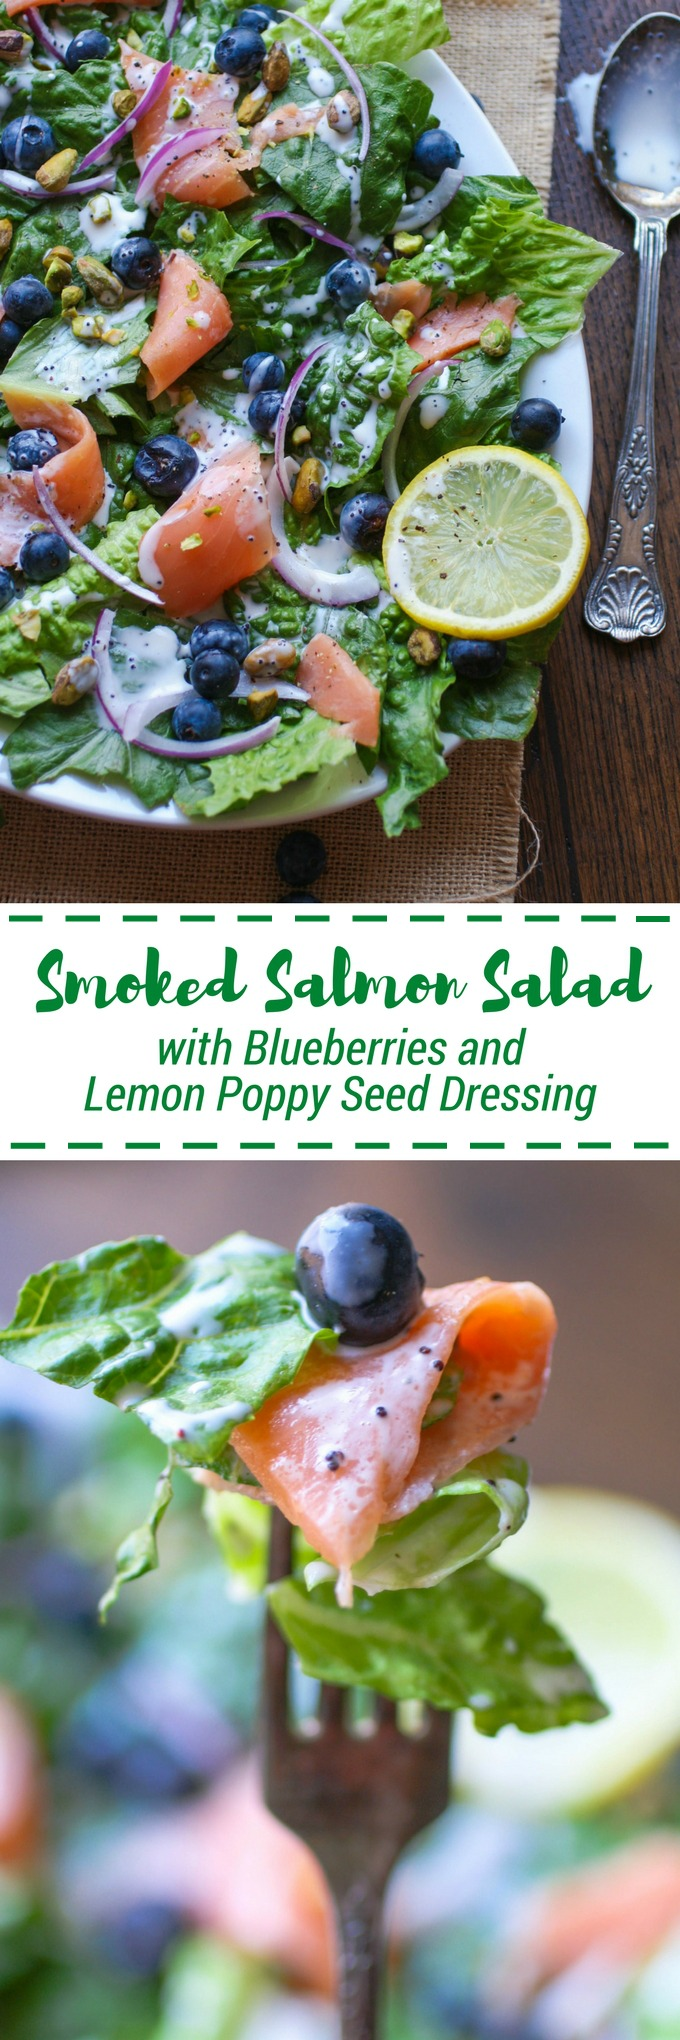 Smoked Salmon Salad with Blueberries and Lemon Poppy Seed Dressing is perfect for a summer meal. No need to turn on the oven or sacrifice flavor!